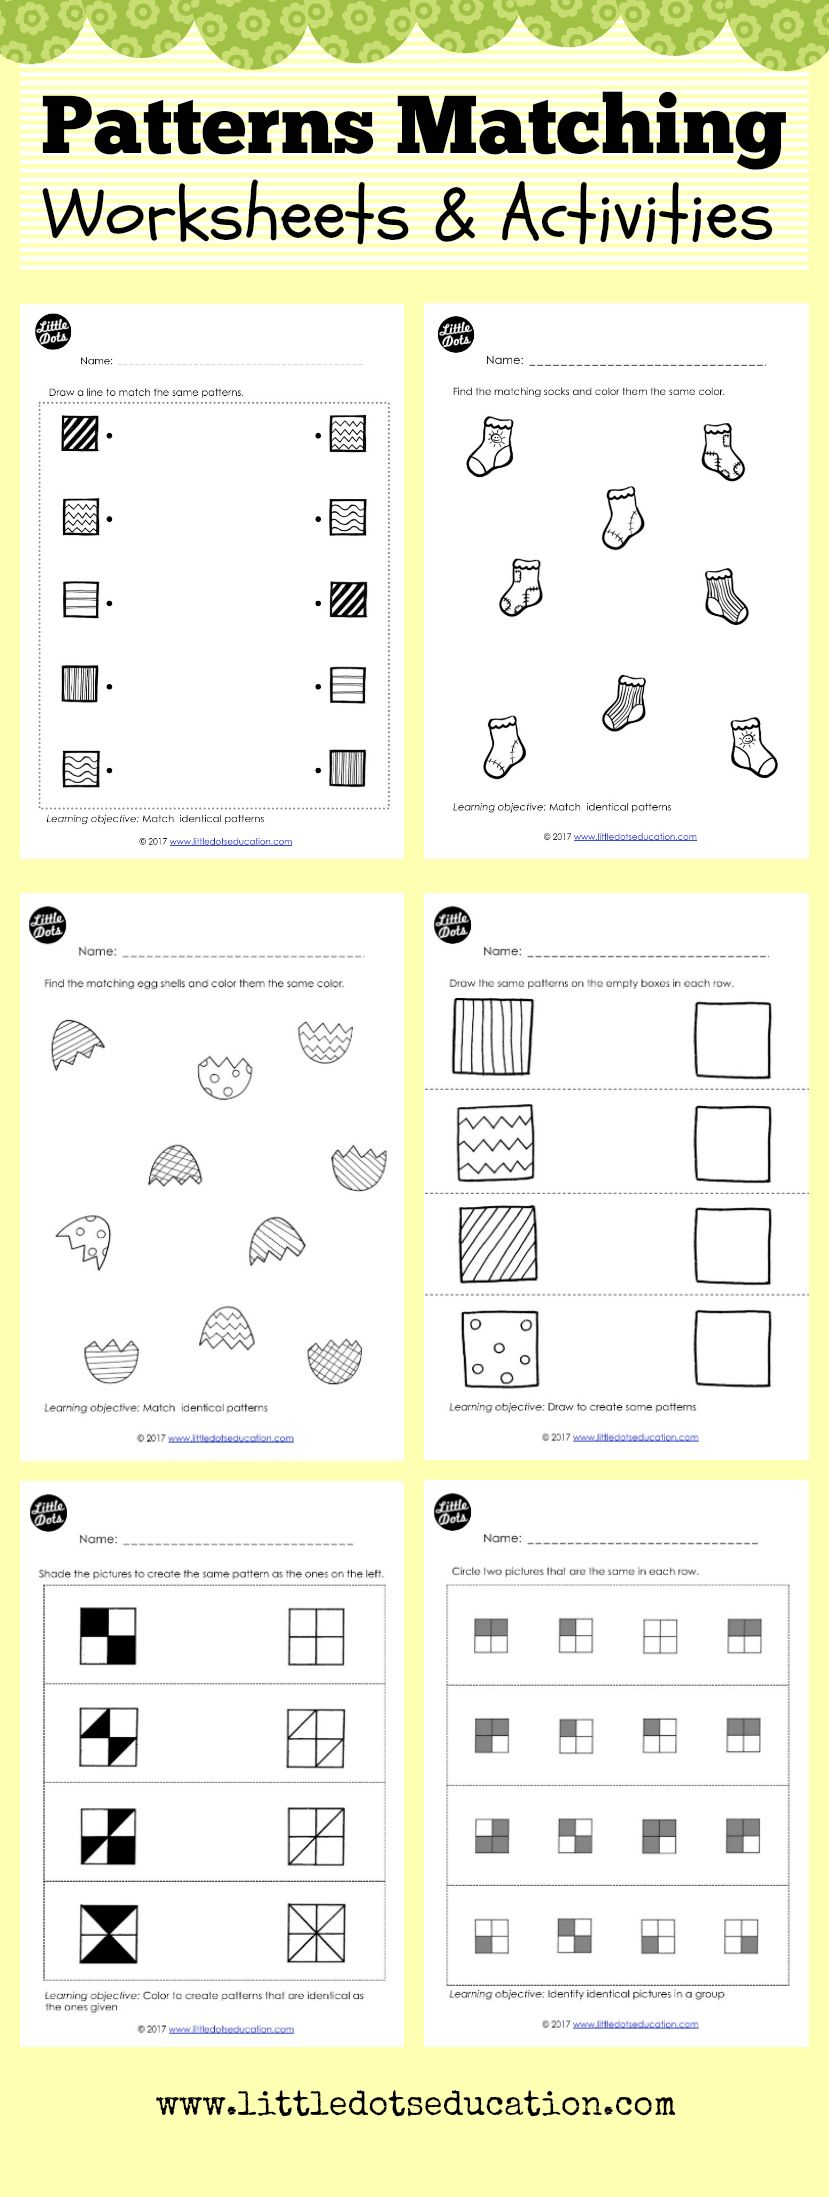 Preschool Patterns Matching Worksheets And Activities Preschool Patterns Pattern Worksheets For Kindergarten Matching Worksheets